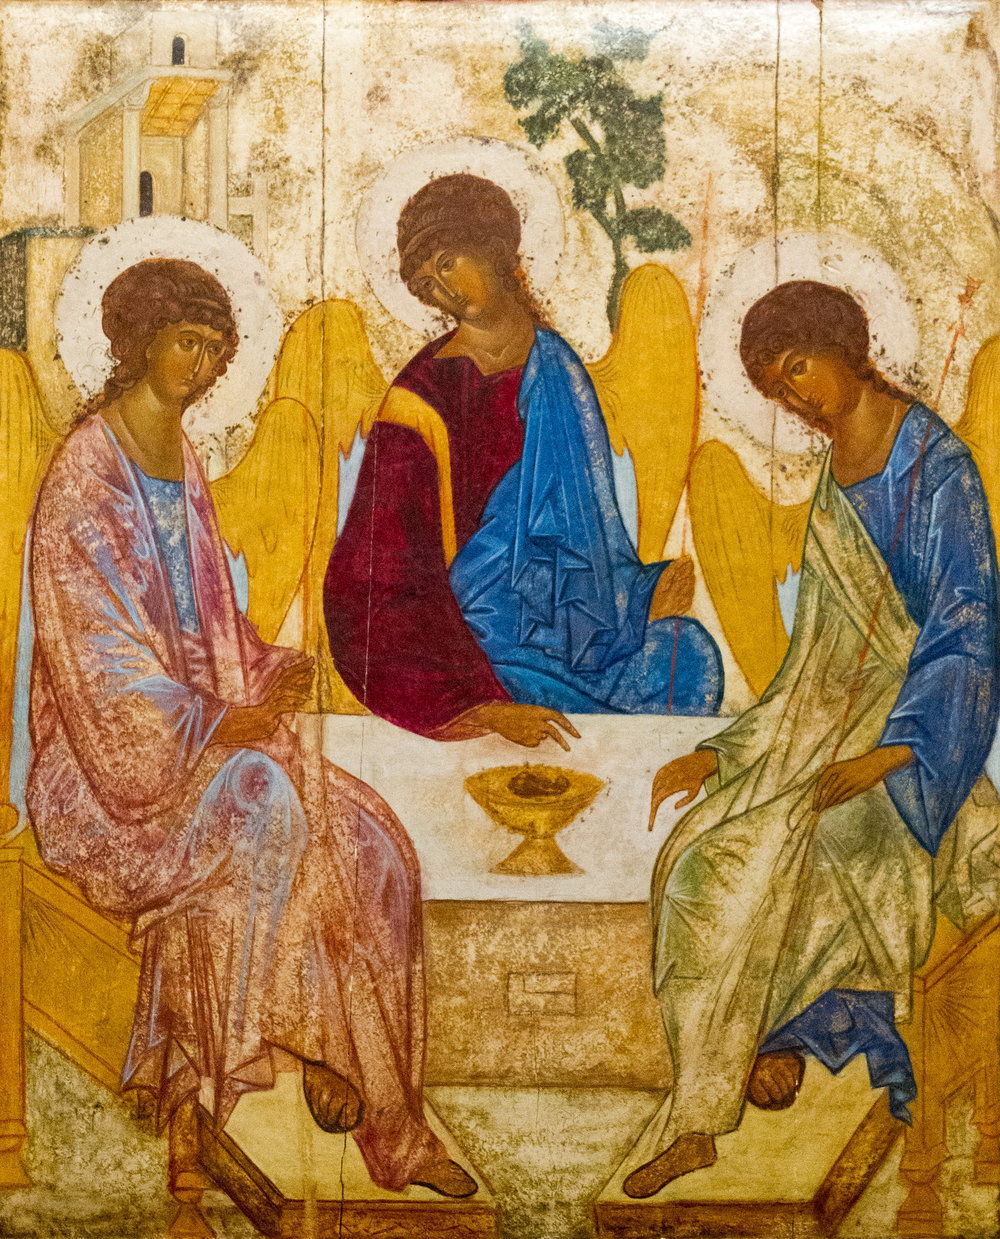 Trinity Sunday - The Rev. Keith Fallis